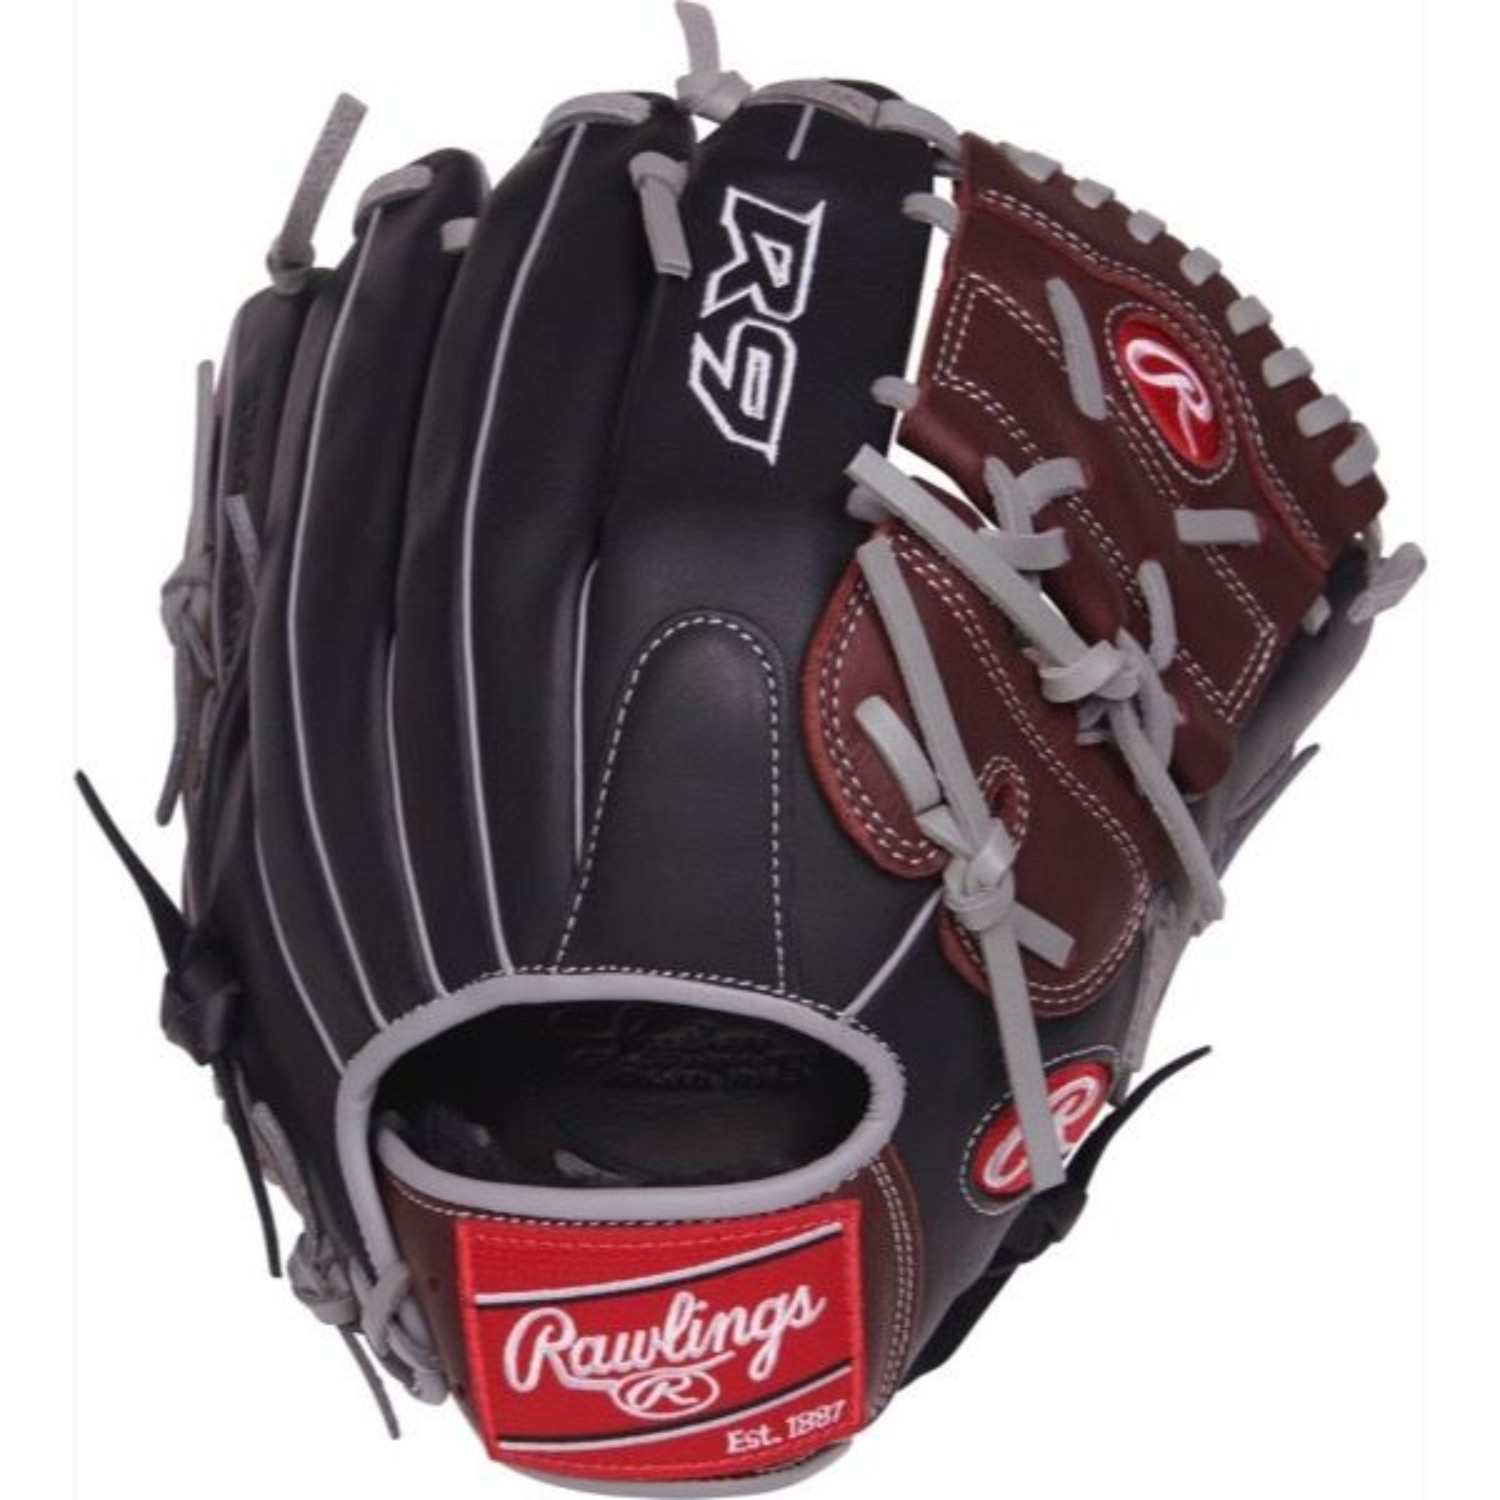 "Rawlings 12"" R9 Series Baseball Glove, Right Hand Throw"